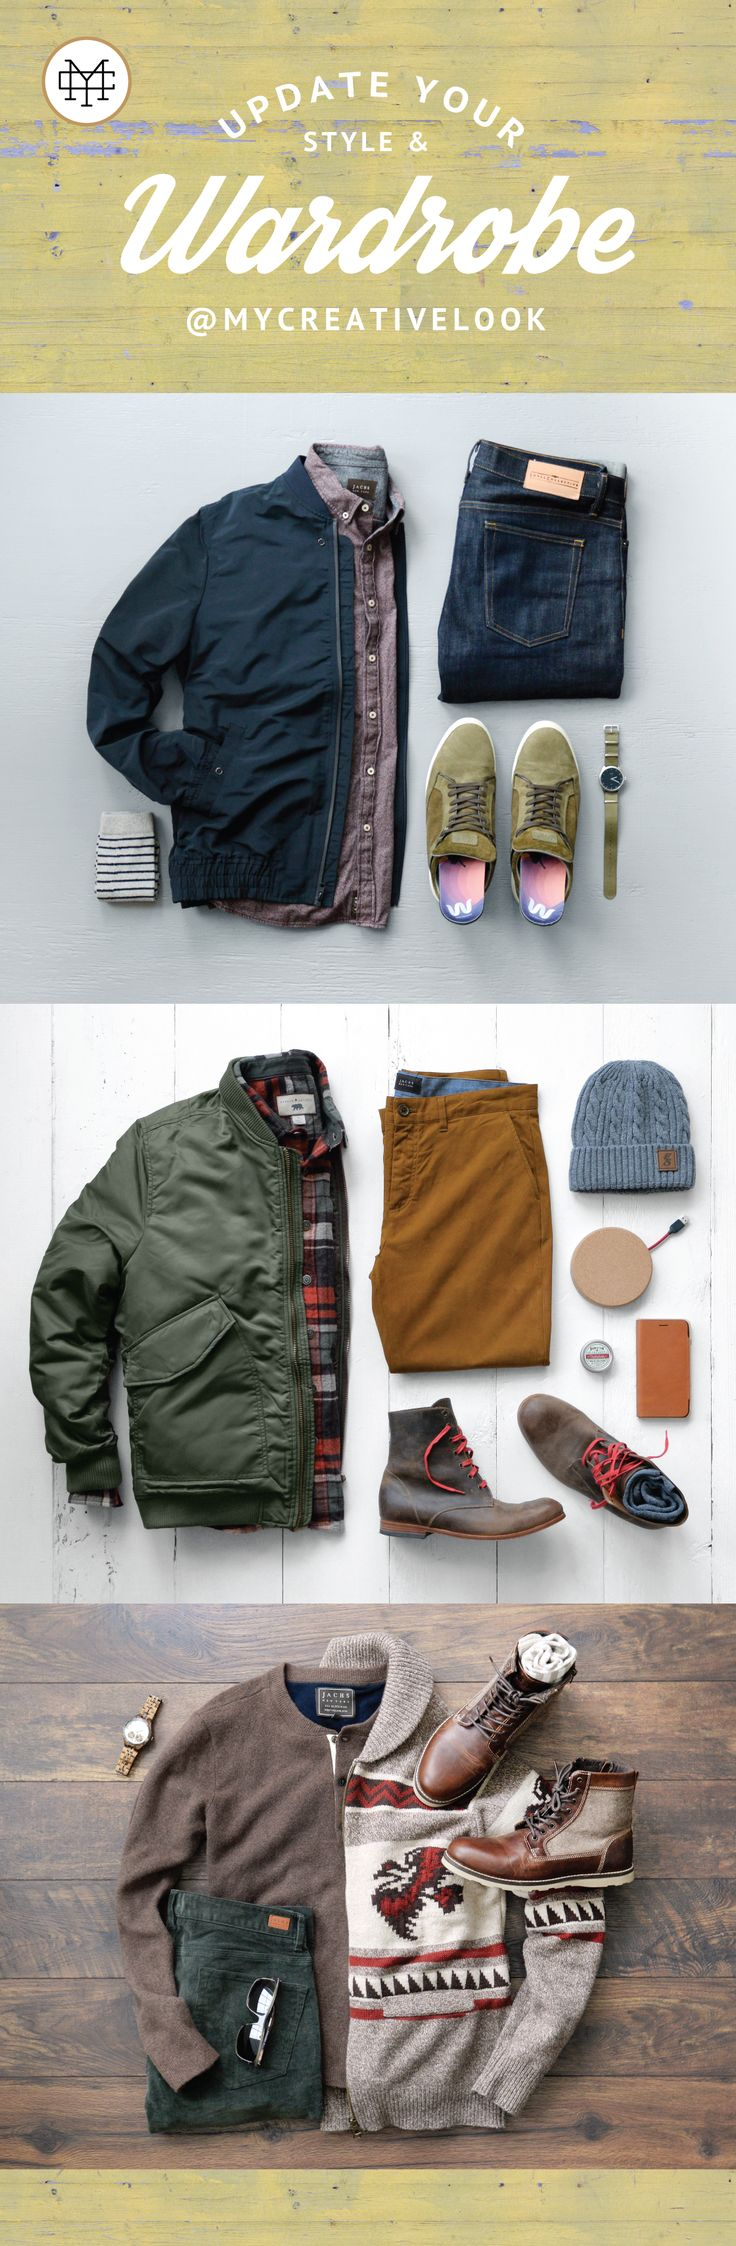 Update Your Style & Wardrobe by checking out Men's collections from MyCreativeLook | Casual Wear | Outfits | Winter Fashion | Boots, Sneakers and more. Visit mycreativelook.com #wardrobe #mensfashion #mensstyle #menswear #mensclothing